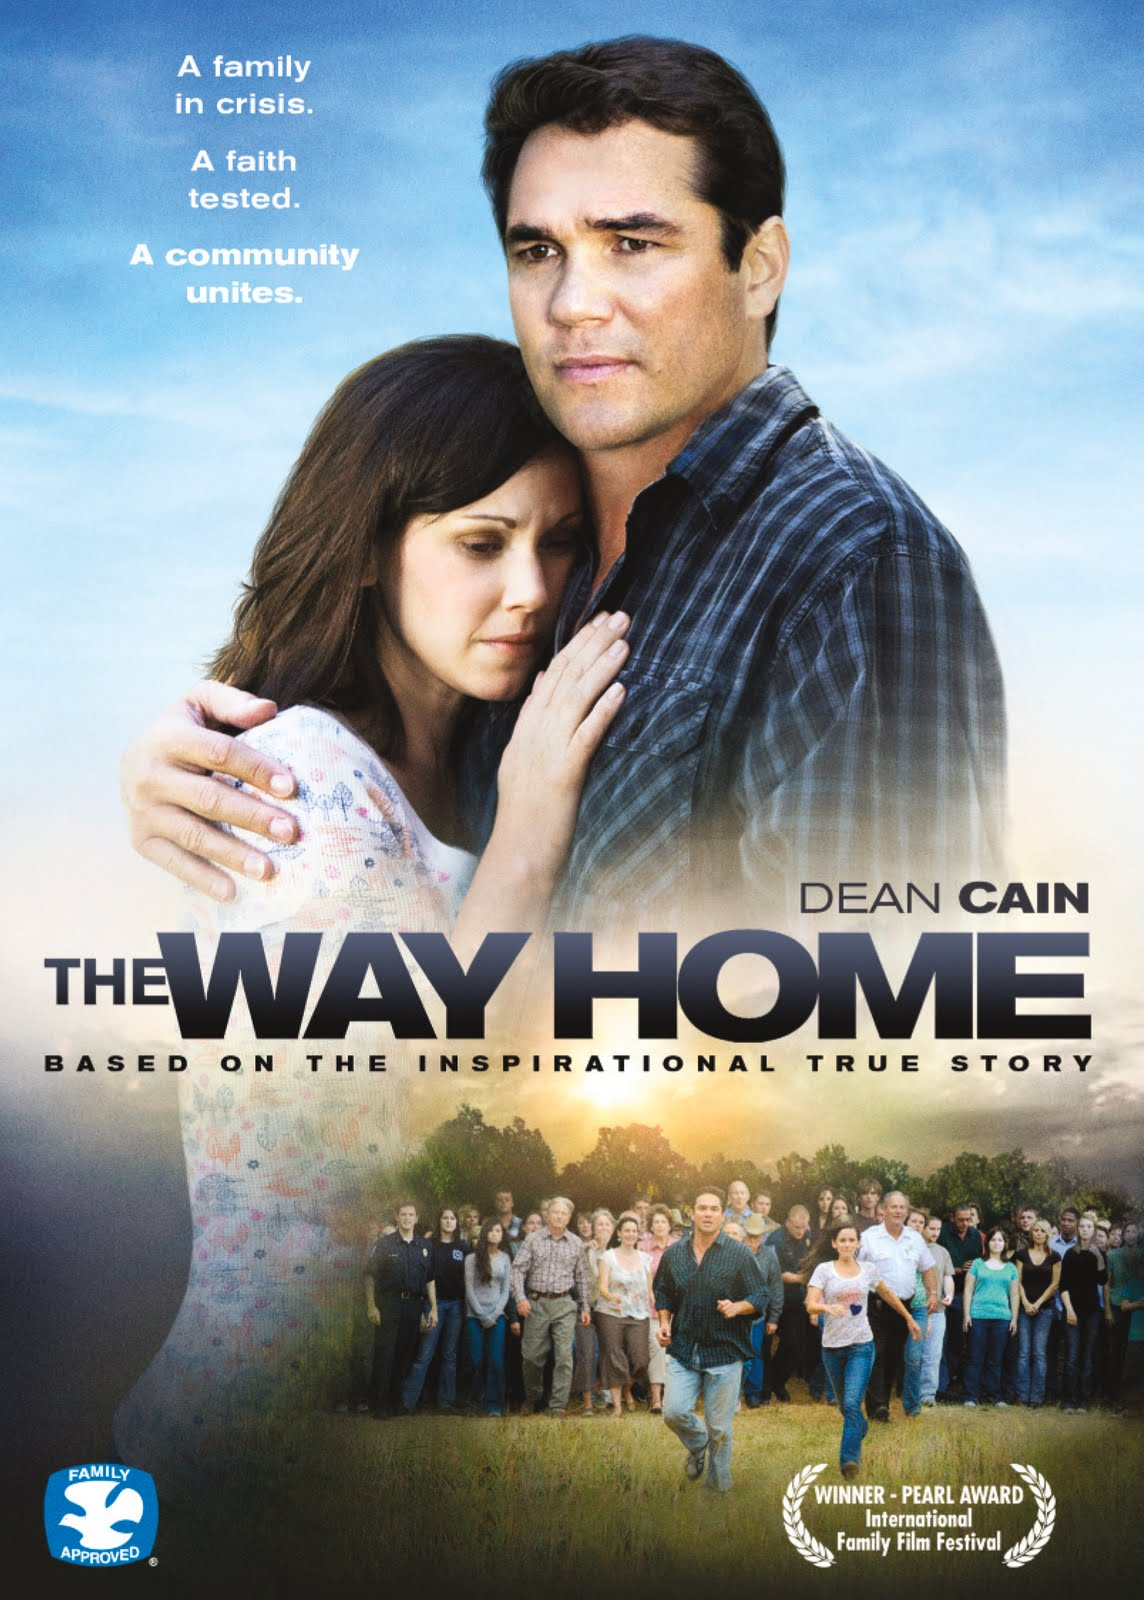 http://1.bp.blogspot.com/_yvSGgZS_LAQ/TGUhN1M6UAI/AAAAAAAAACE/XF6agUHsG9k/s1600/R5_The+Way+Home+DVD+cover+art.jpg